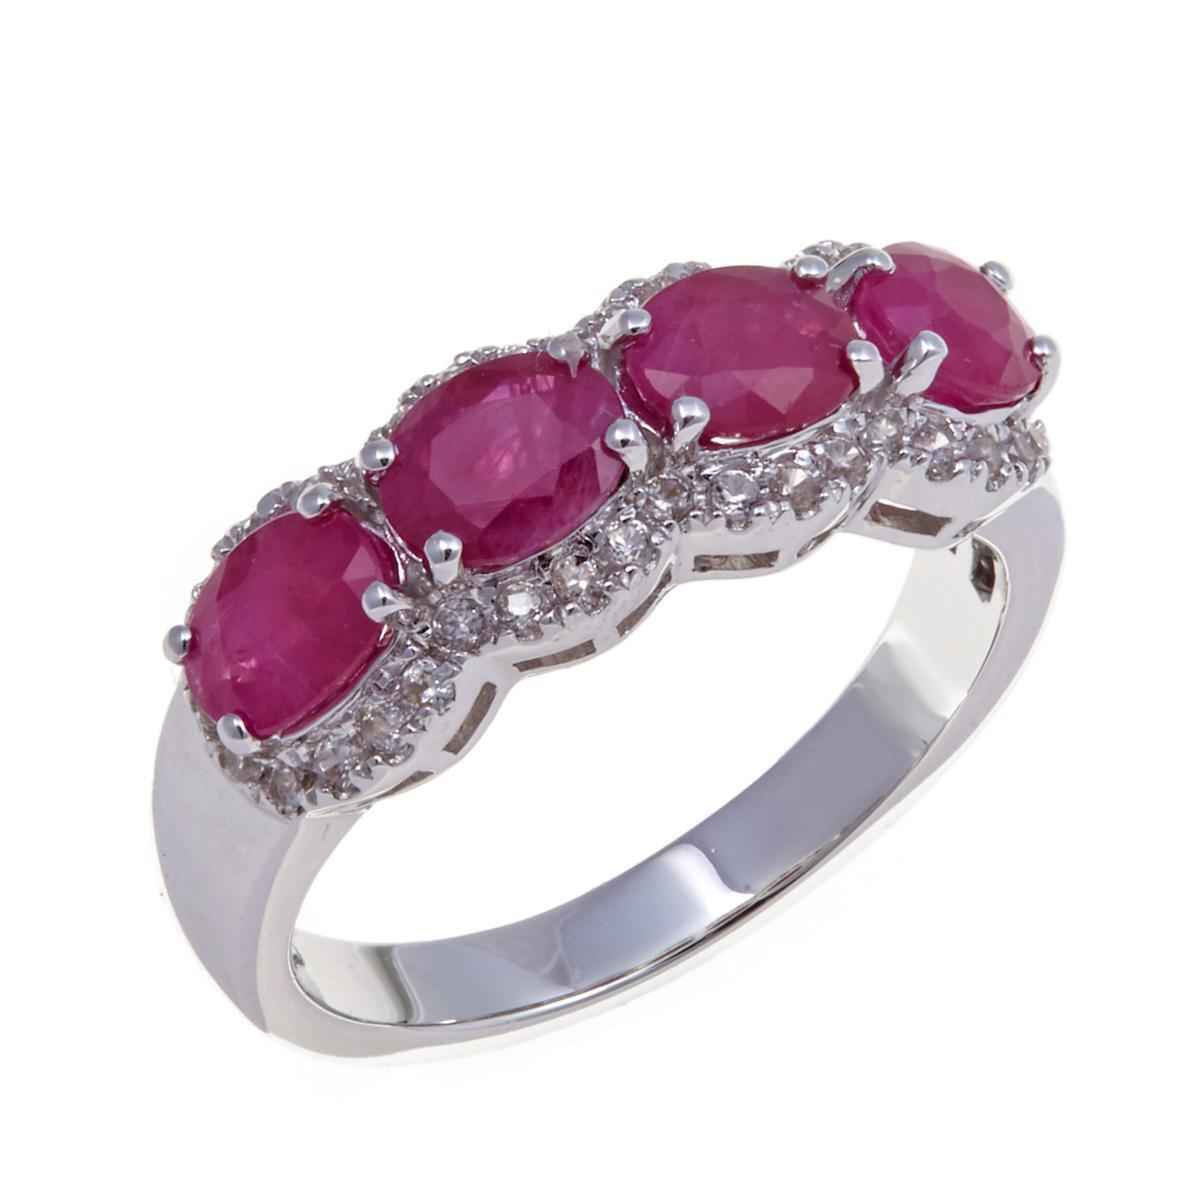 COLLEEN LOPEZ 1.77CT BURMESE RUBY & WHITE ZIRCON STERLING RING SIZE 8 HSN  299